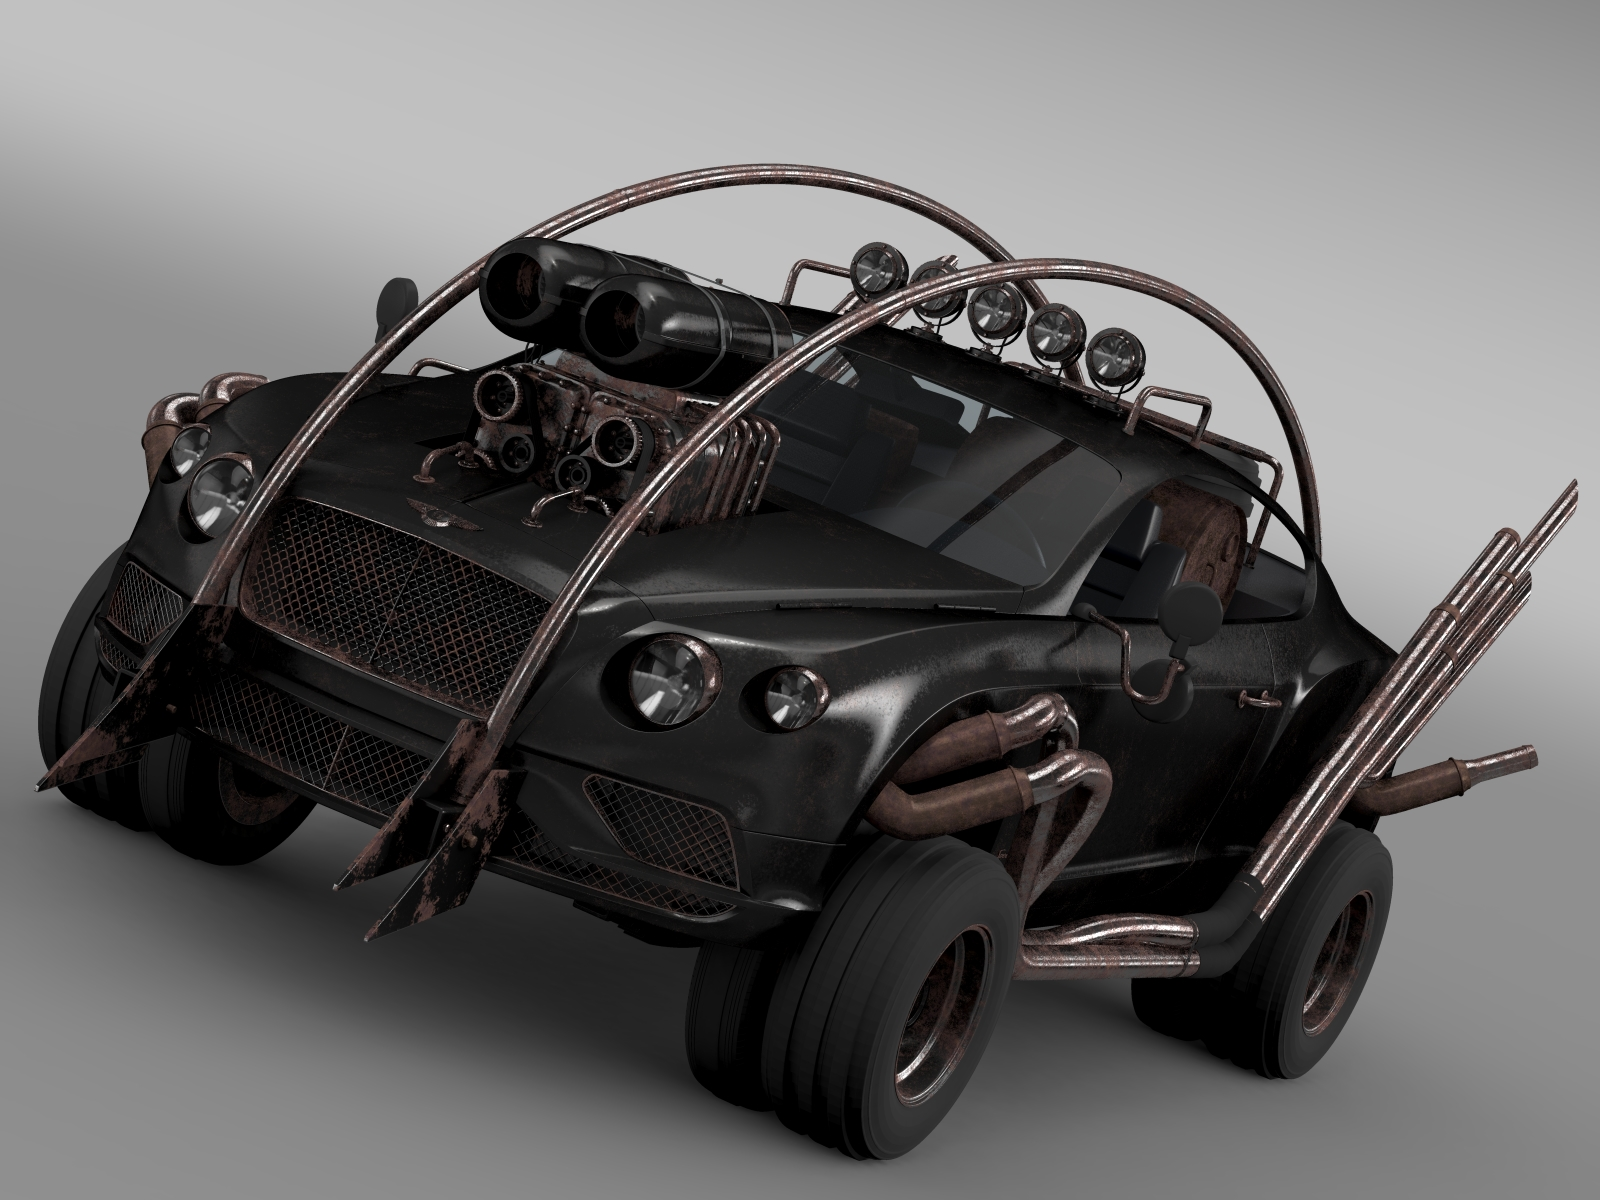 dəlil max grizzly bentley kontinental 2015 3d model 3ds max fbx c4d lwo ma mb hrc xsi obj 212614